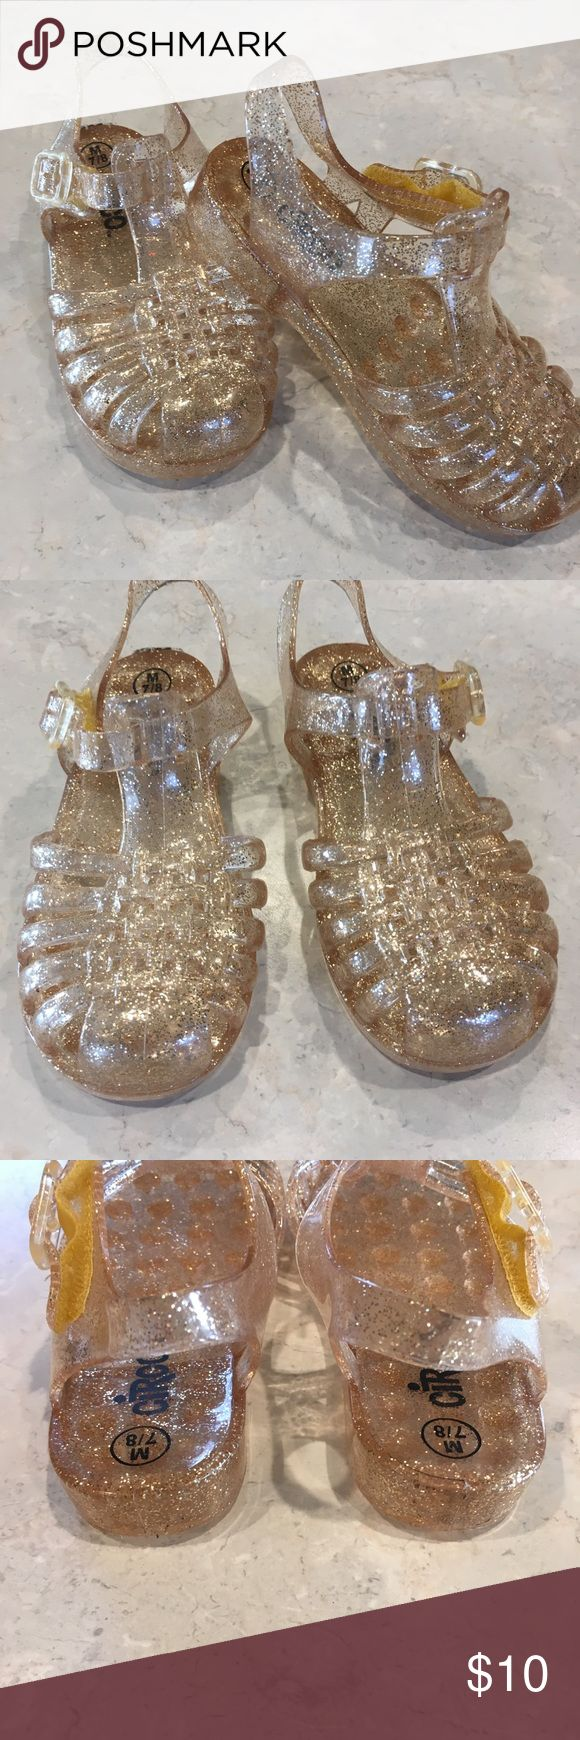 Sparkly Gold Jelly sandals.  Size 7/8 toddler Size 7/8 toddler sparkly gold jelly sandals. Some kids love jellys, mine didn't. Refused to wear even once.  I was so bummed because they are sooooo cute!  New without tags Smoke free, cat free Circo Shoes Sandals & Flip Flops